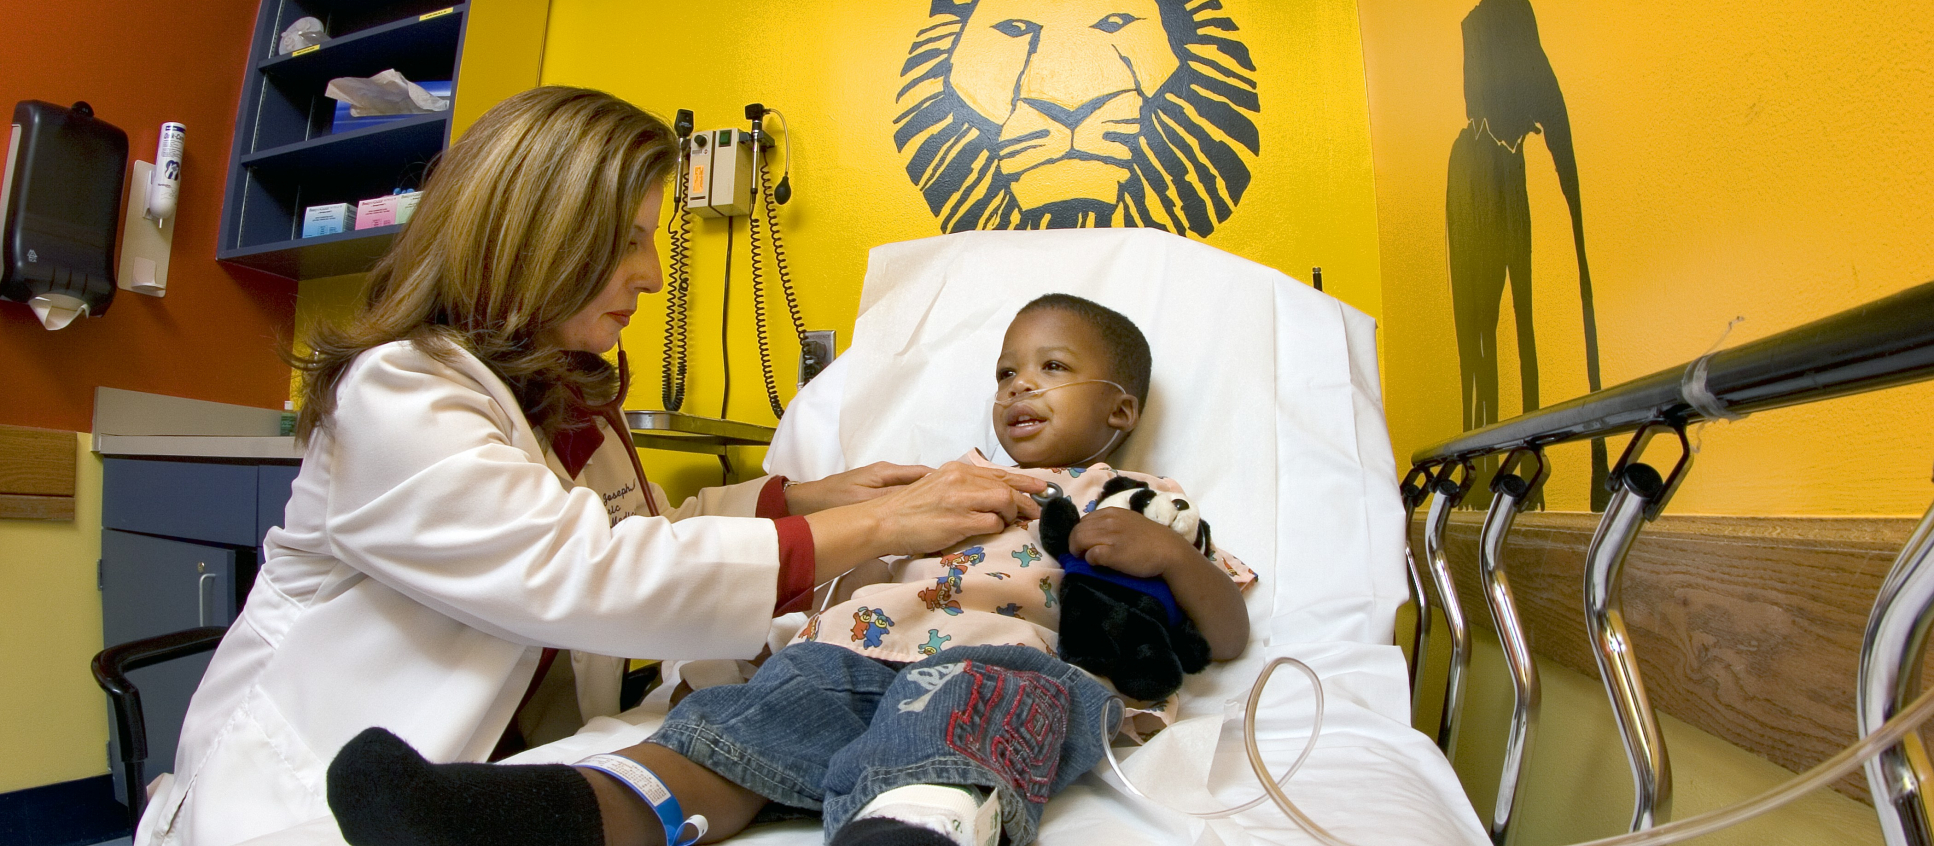 University of Florida pediatric emergency medicine physician Dr. Madeline Joseph sees patients at the UF Health Jacksonville Pediatric Emergency Department.